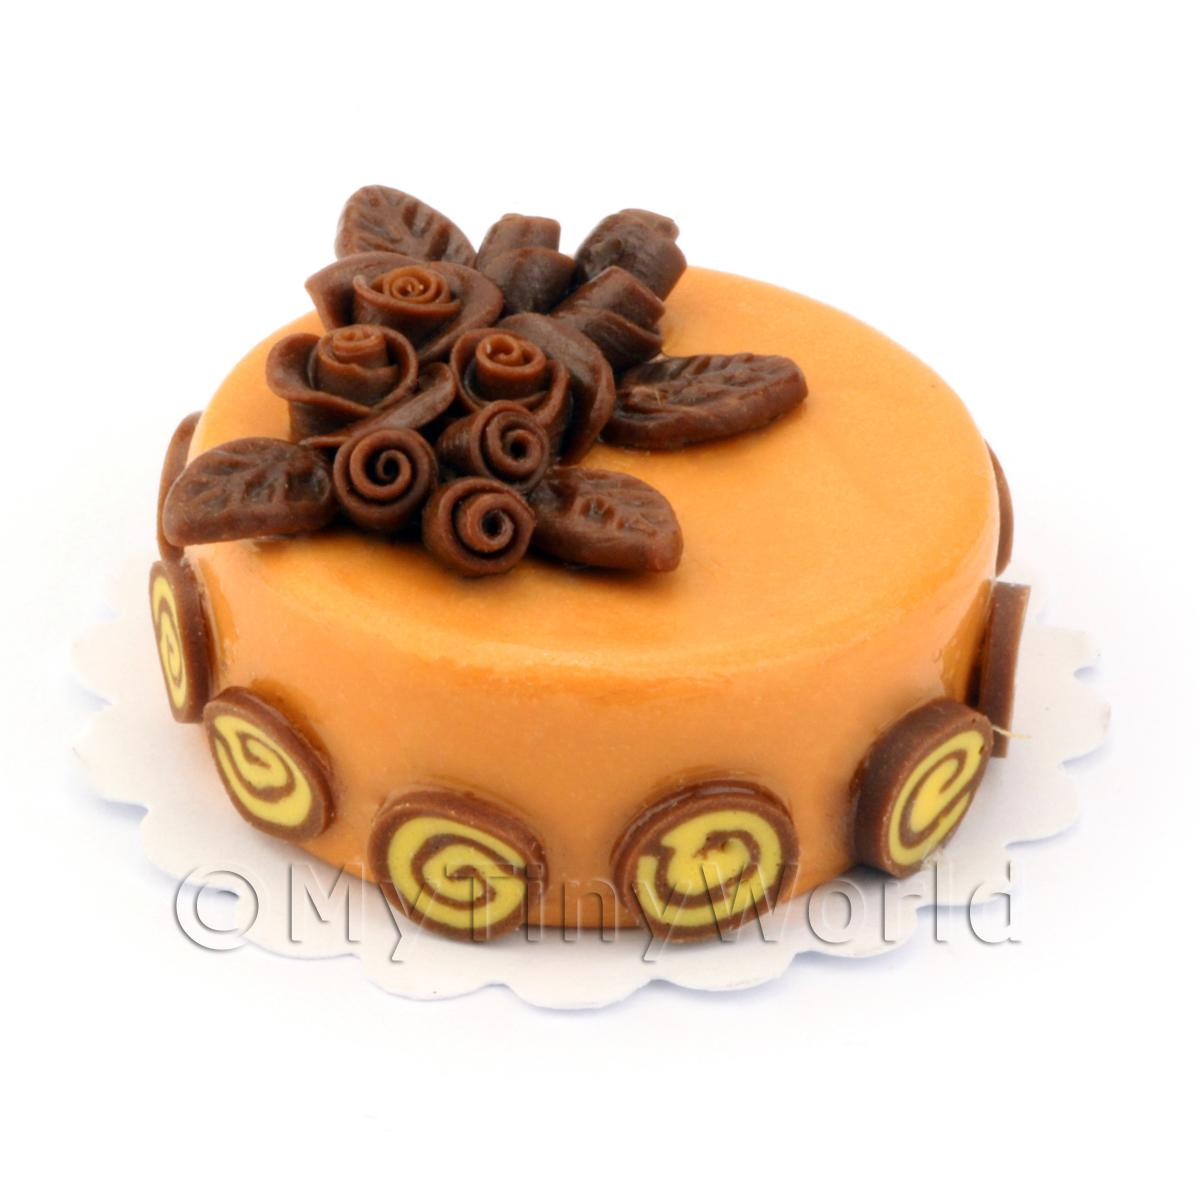 Dolls House Miniature Round Caramel and Chocolate Rose Cake